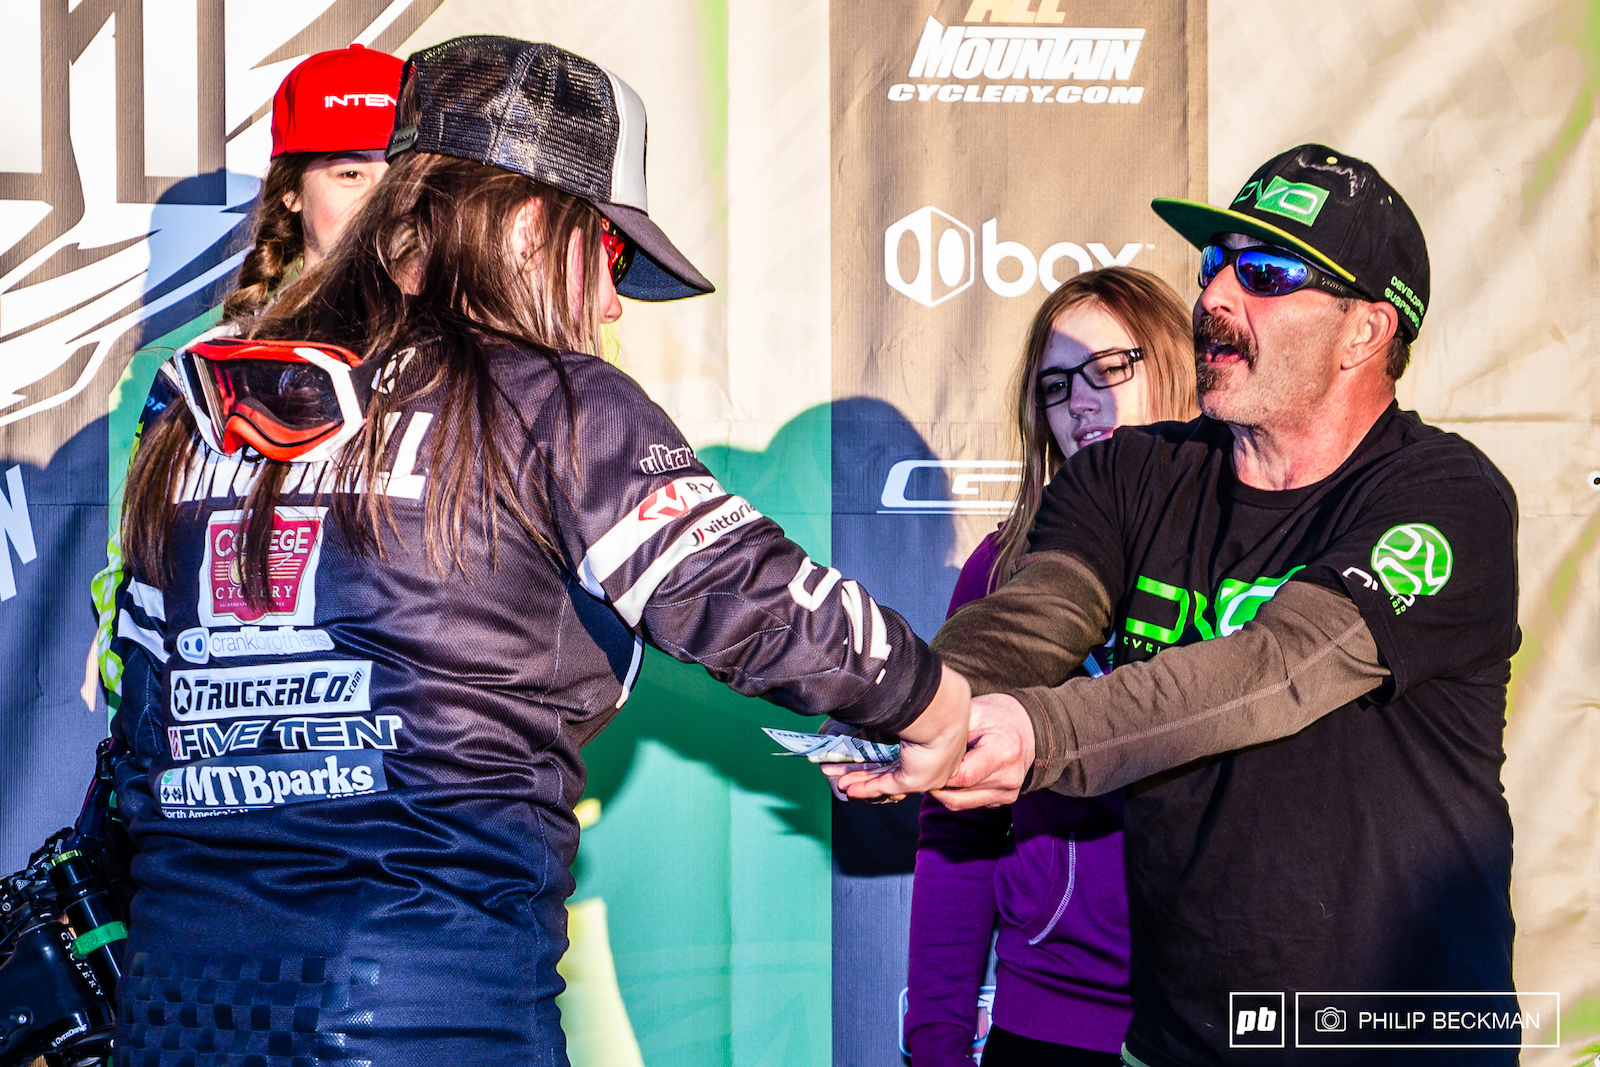 A generous purse was on offer equally split between the Pro Men and Women. Here event promoter Downhill Mike Sheur hands Samantha Kingshill a cool 500 in cash. This kind of payout indeed the event itself would not have been possible without the support of DVO Suspension Box Components Promax GT Bicycles All Mountain Cyclery Deity Novatec HT Components Smanie Onza KHS Bicycles Canfield Bros Truckerco Kali Protectives Kore North Bikes Gravity Cartel IXS Spank Flitelinez Lectric Bikes Haibike the Whiteface Mountain Bike Park ODI Grips and Pinkbike. While we re at it let s recognize the contributions of Dan Haskin the late Brent Thomson as well as the Boulder City Parks Department.